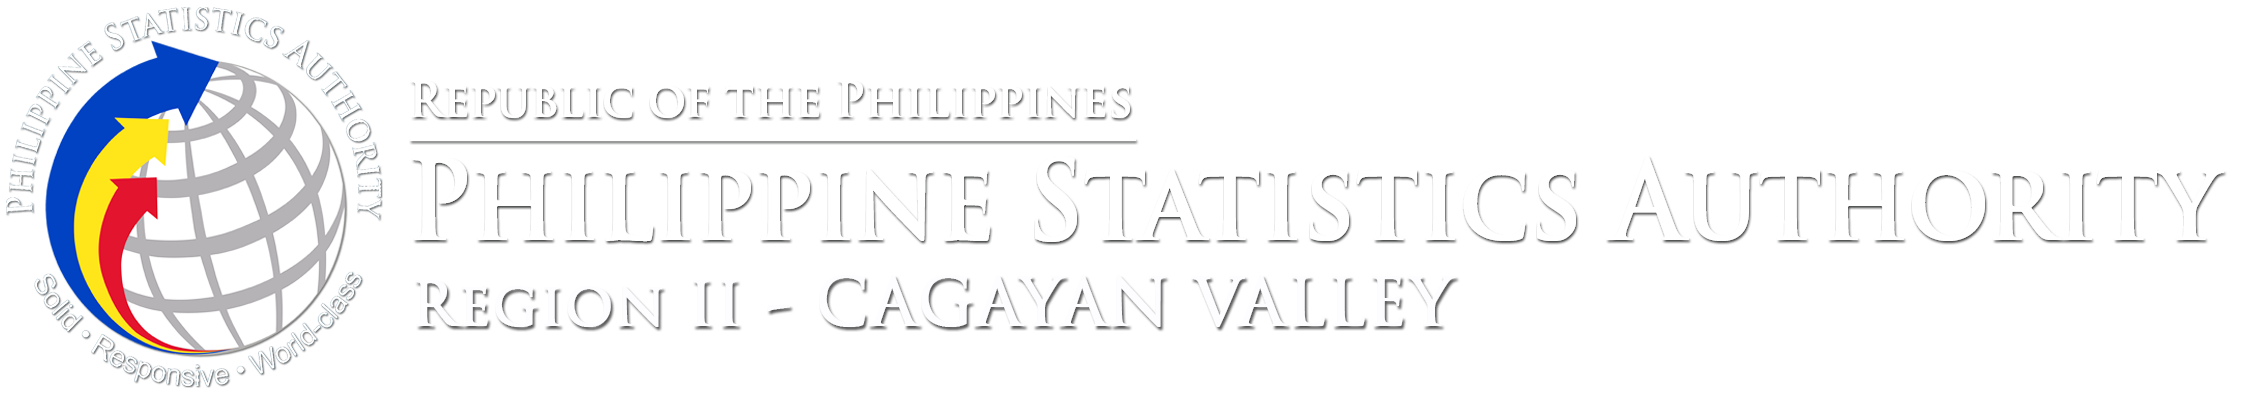 Philippine Statistics Authority Regional Template